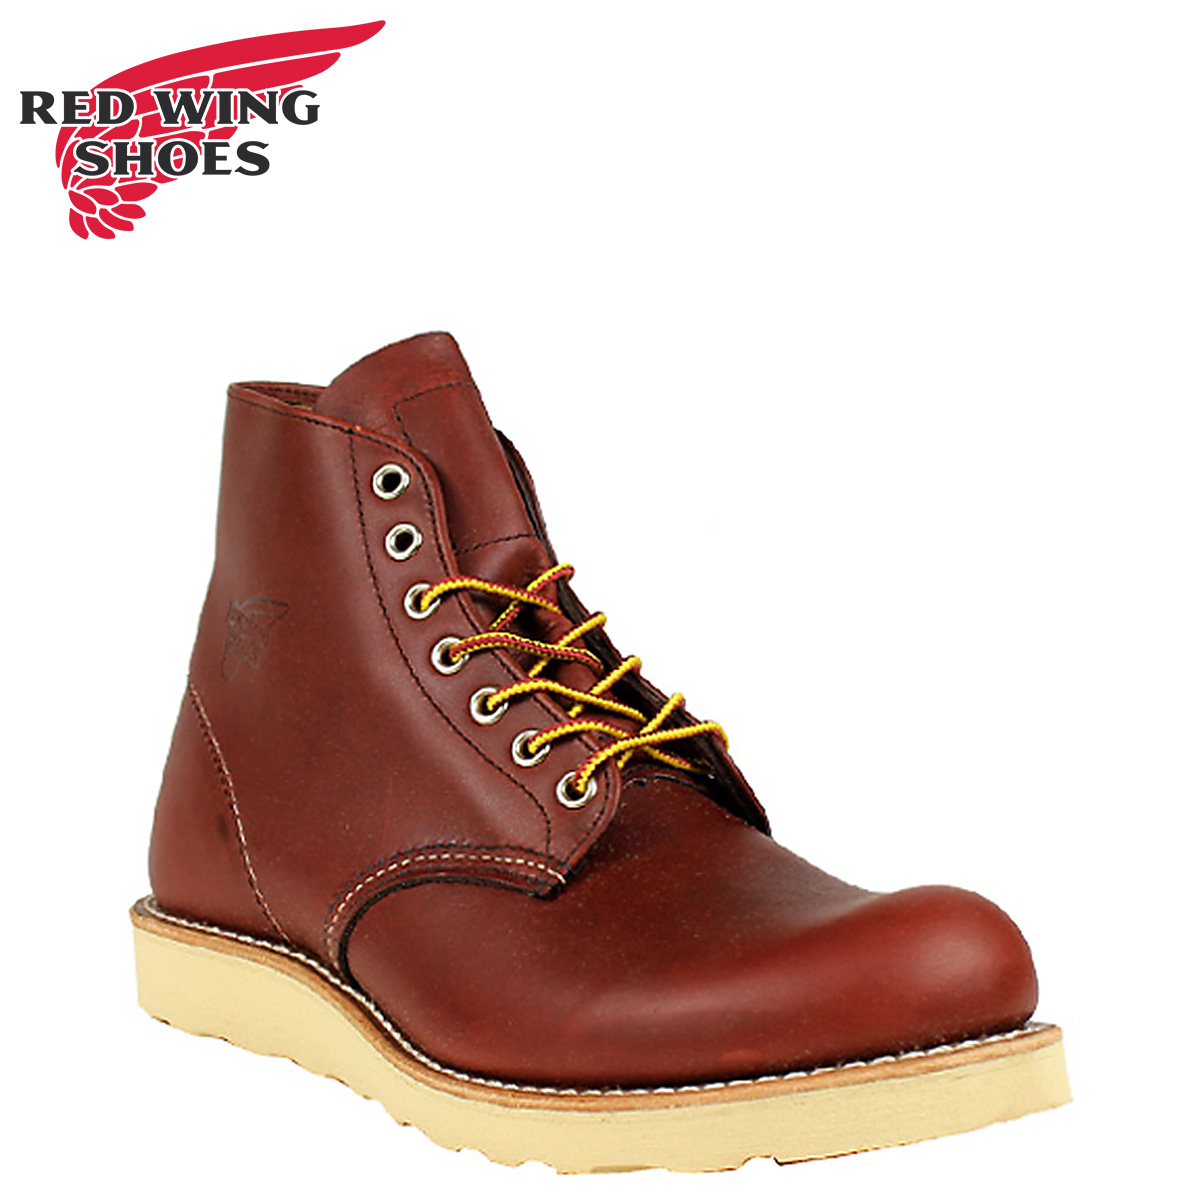 Redwing RED WING 6 inch rounds to boots 9105 8166 6inch Round Toe Boots D wise leather mens Brown Made in USA Red Wing